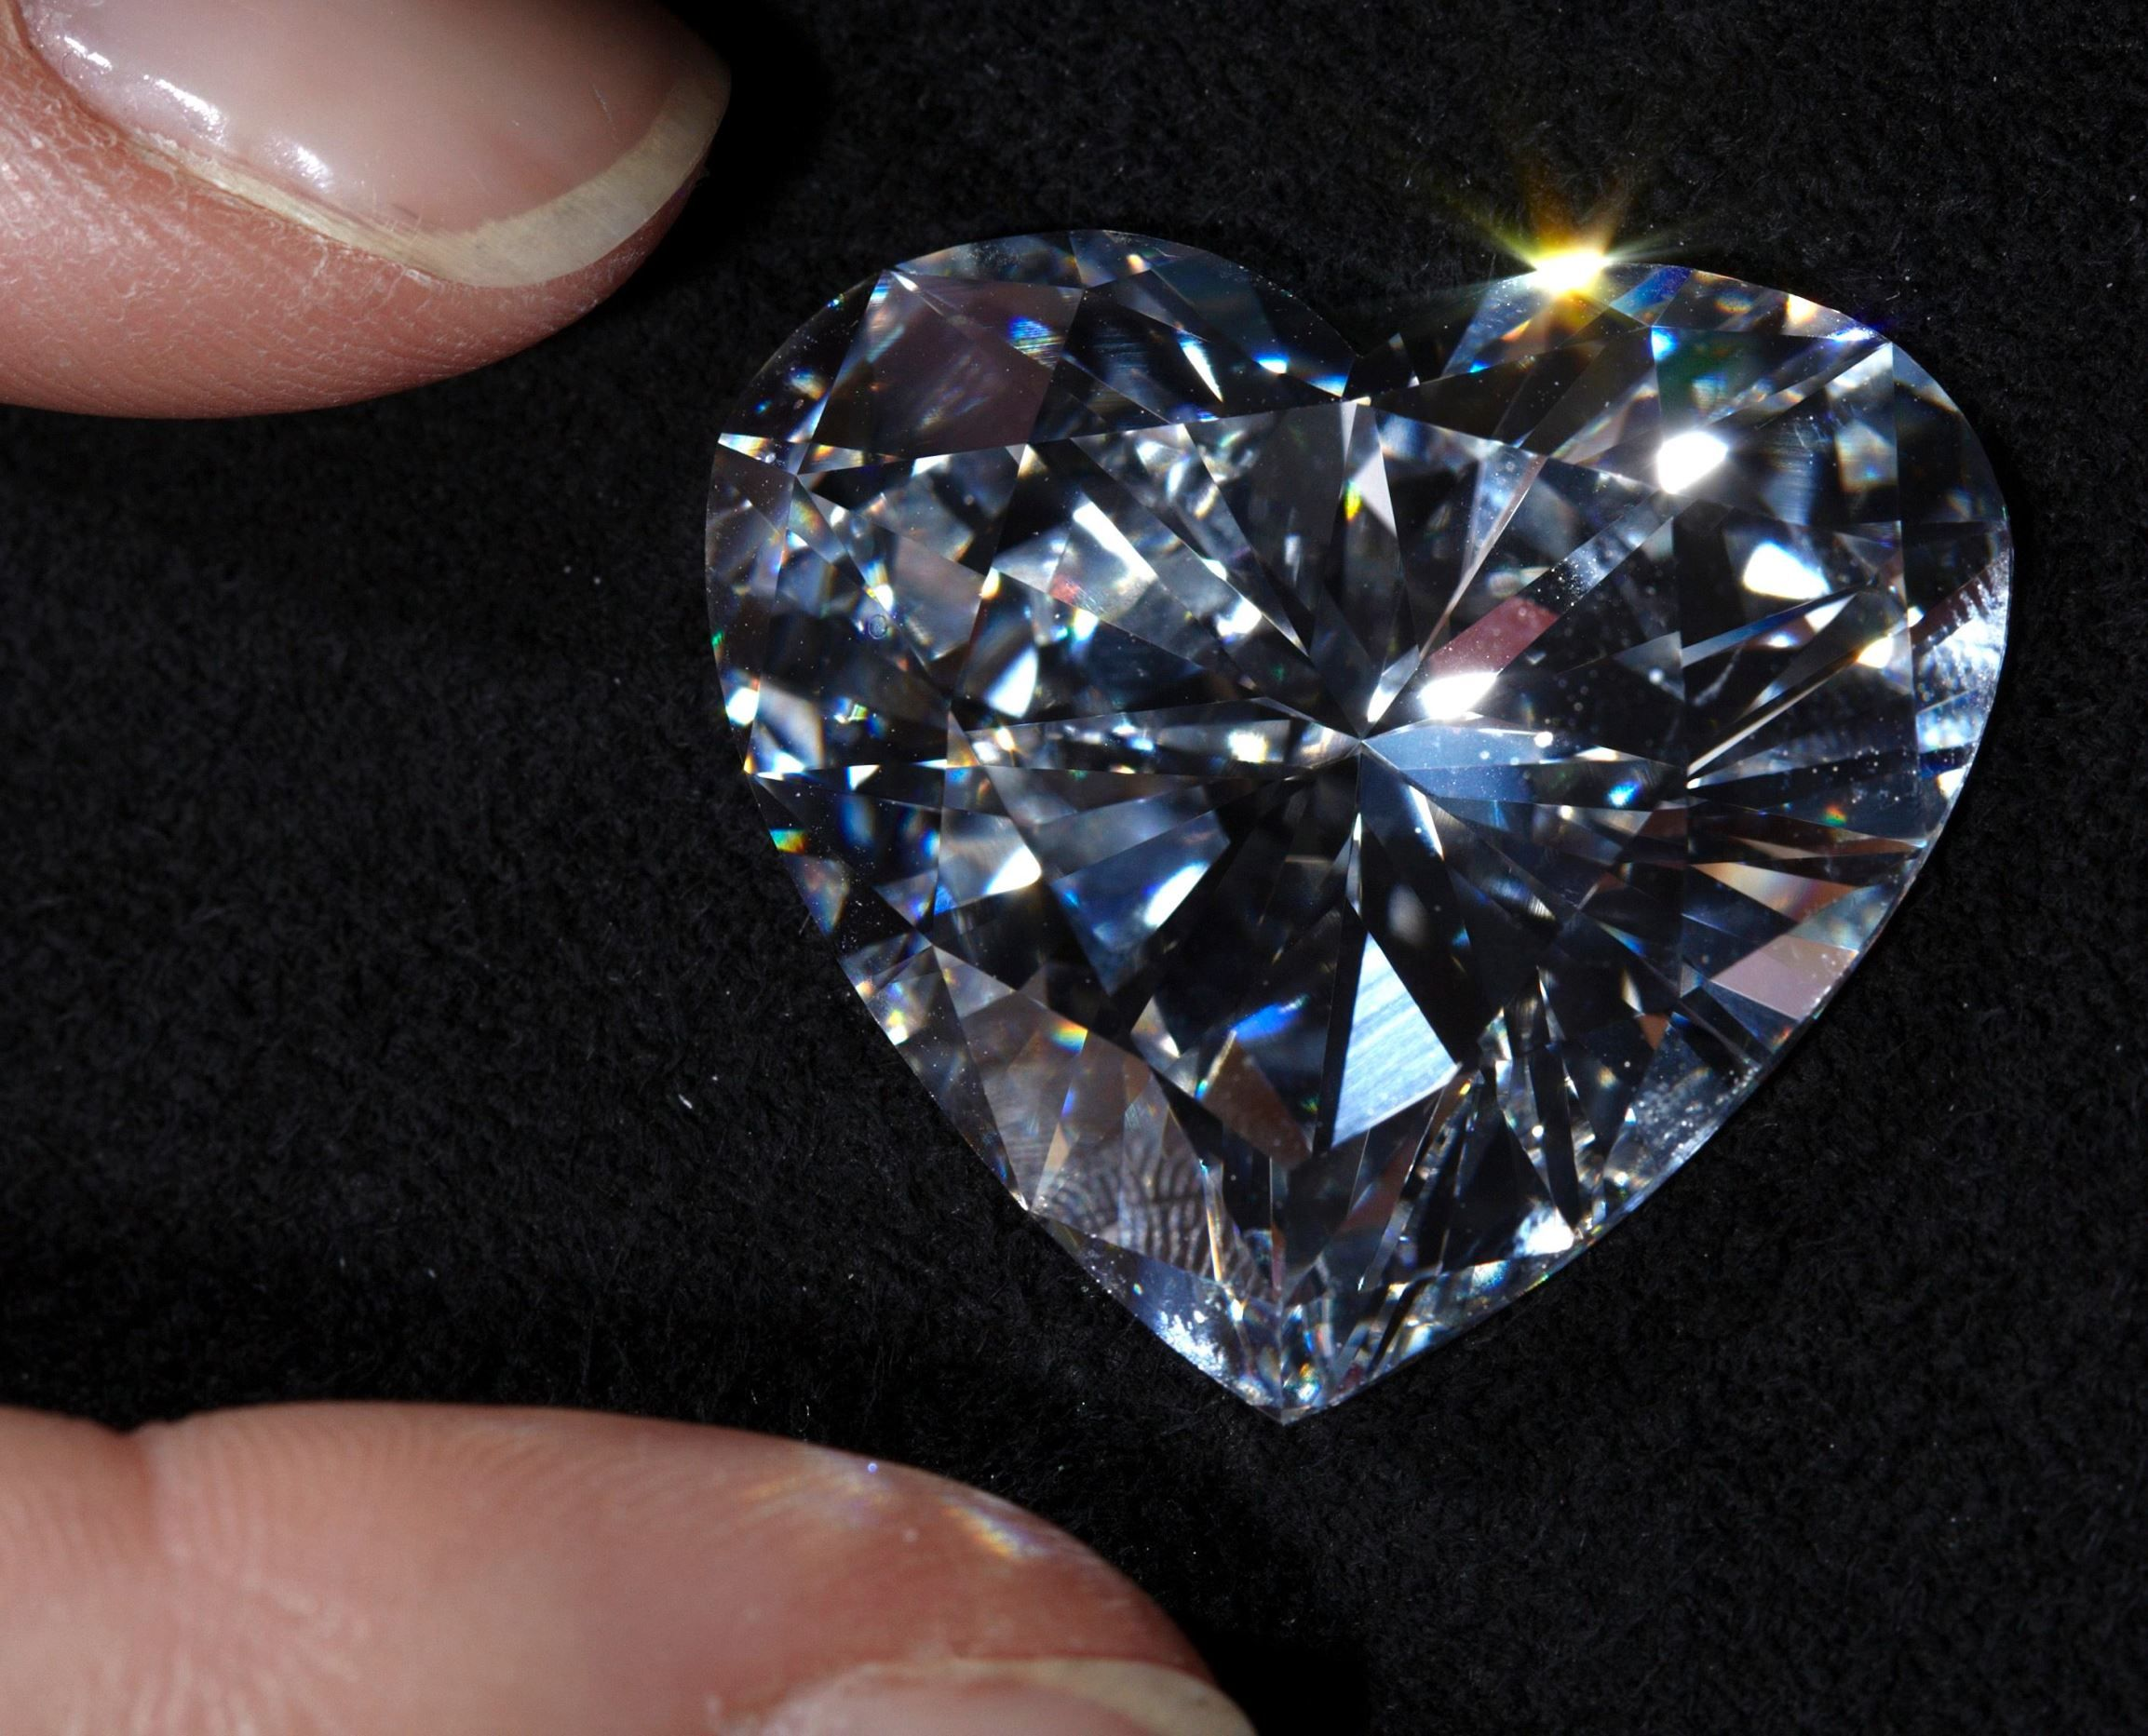 Million dollar stones: Most expensive jewellery in the world